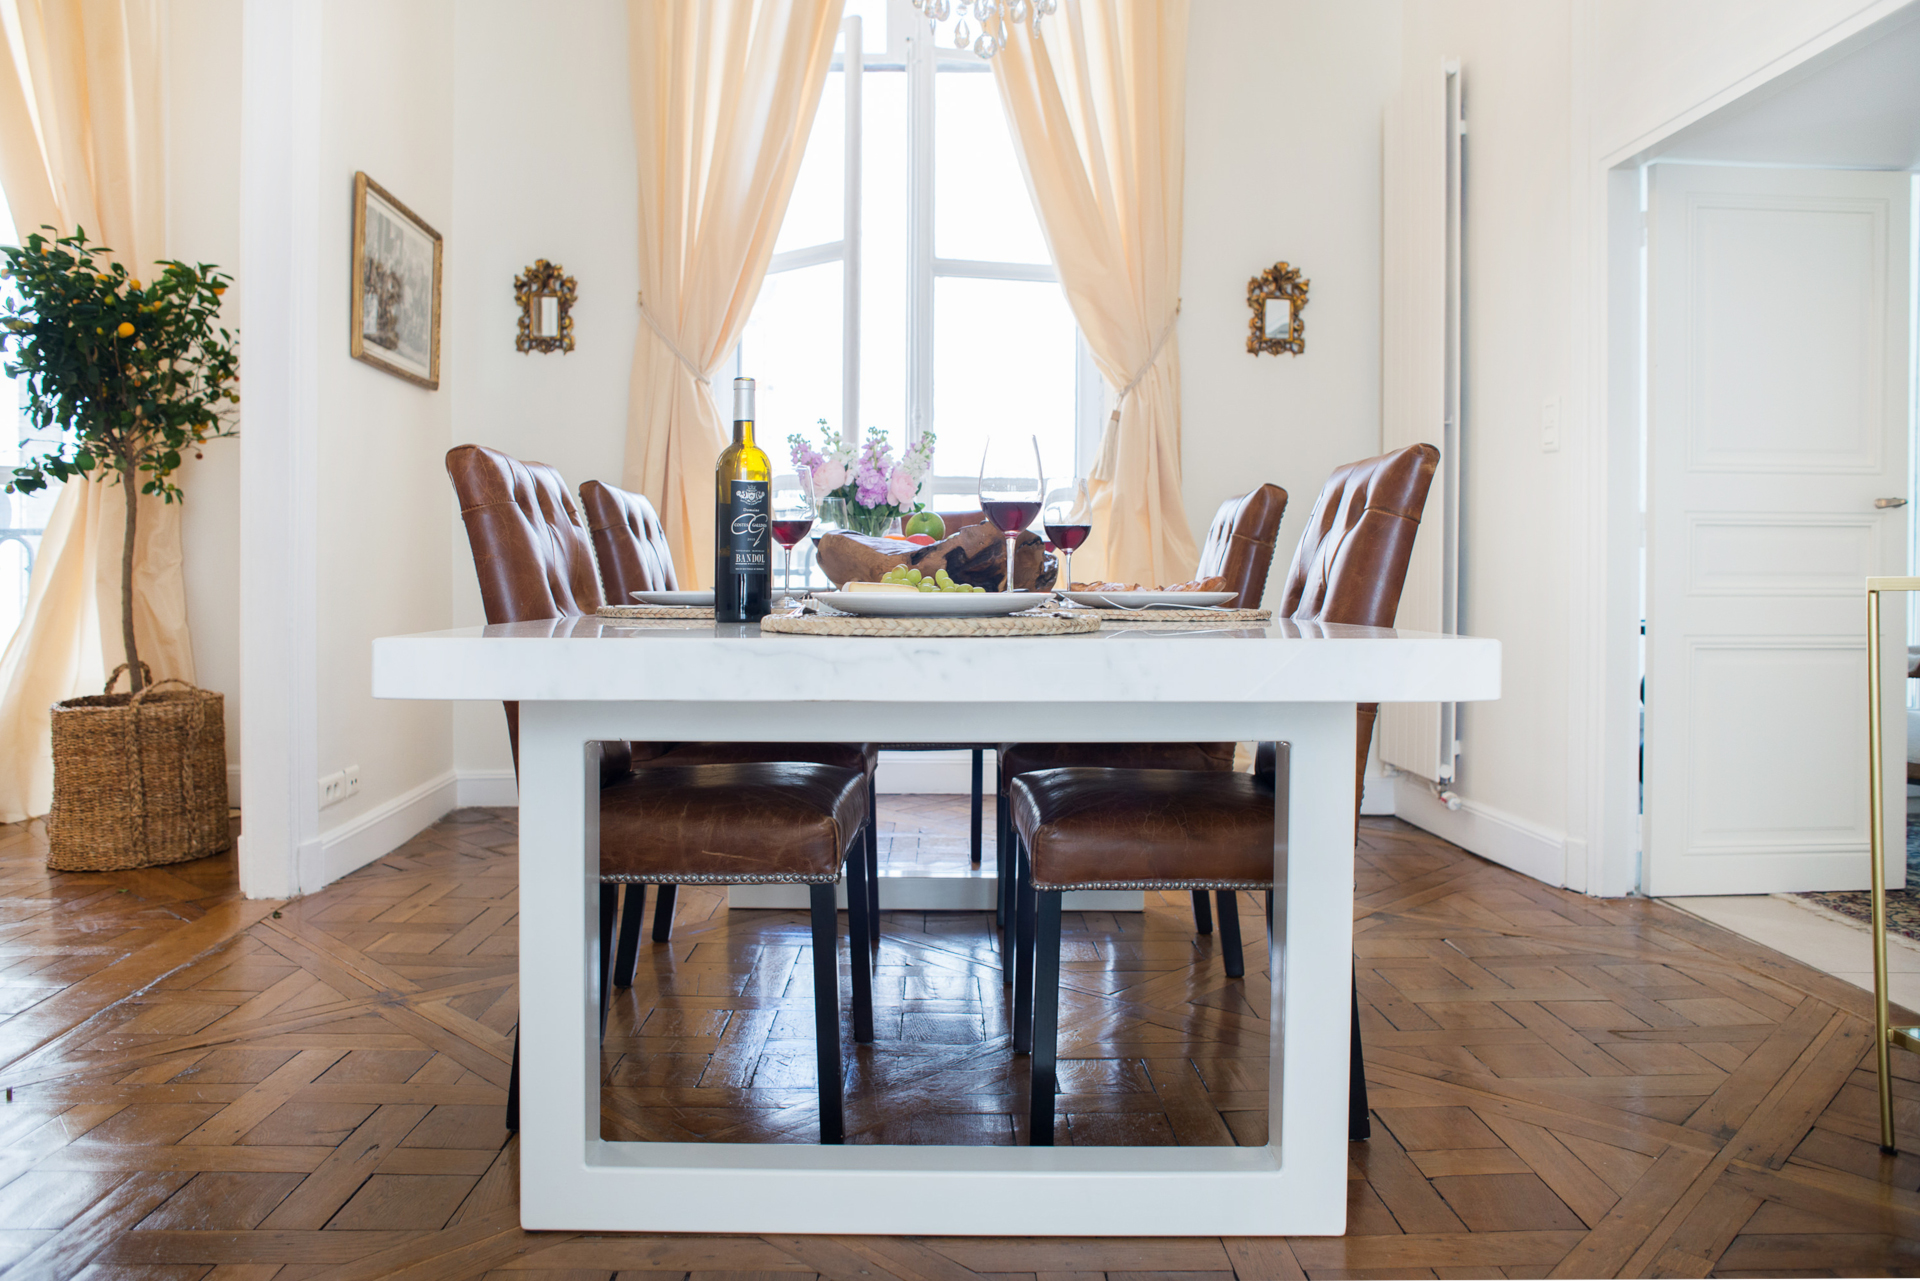 Gorgeous dining room with plenty of space in the Clos Jolie vacation rental by Paris Perfect